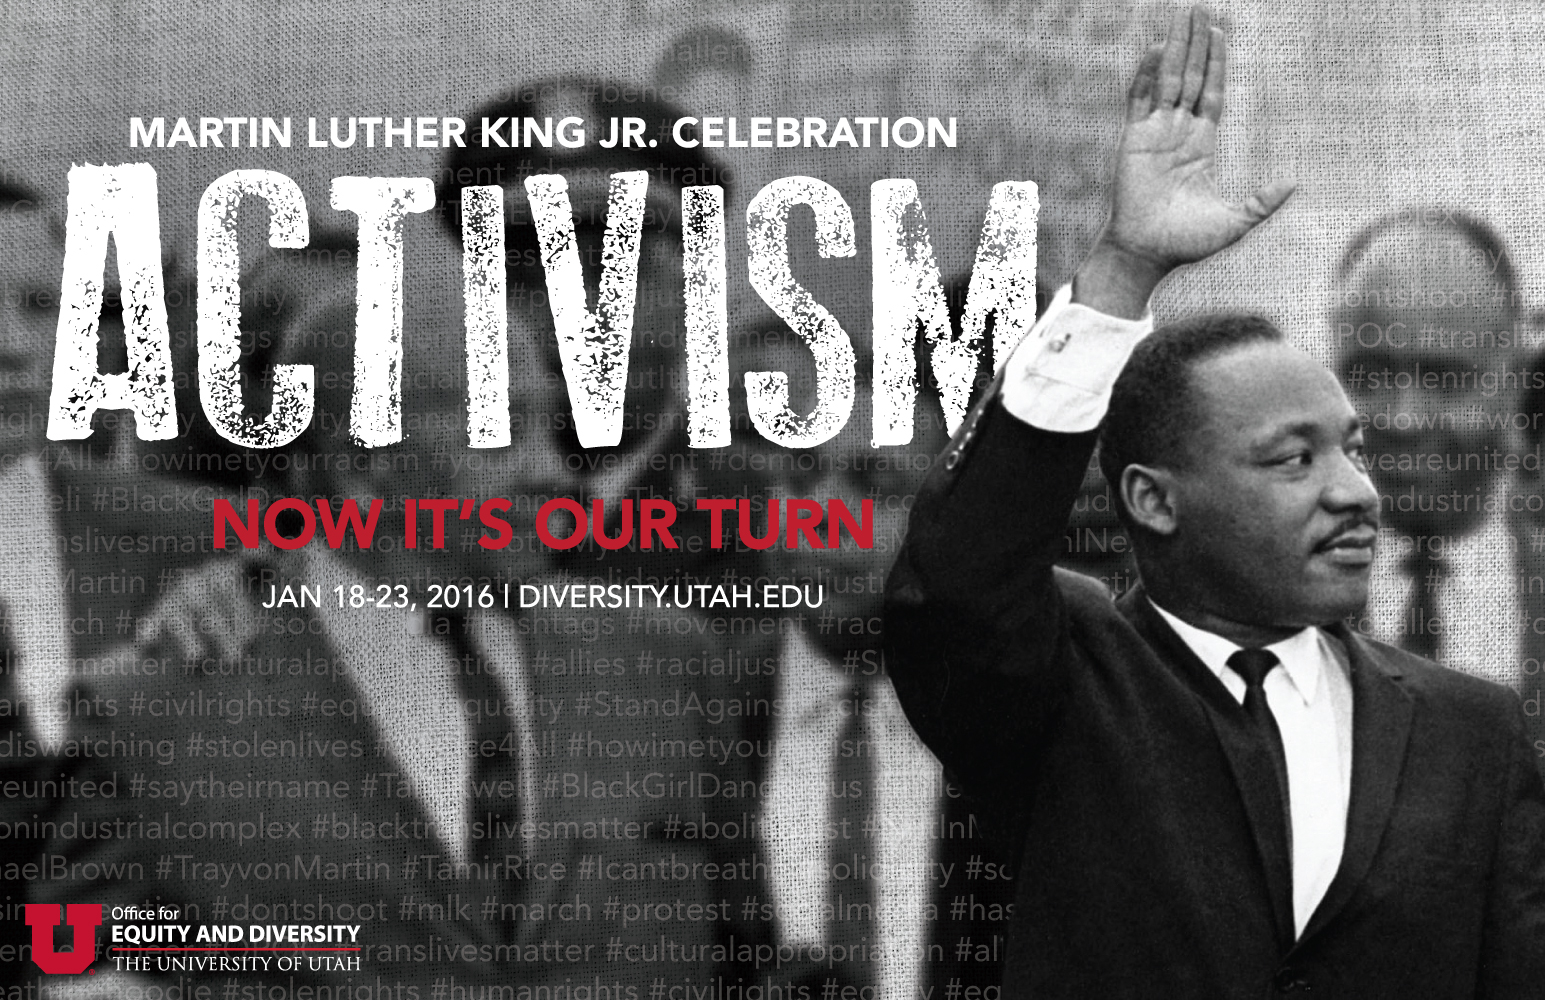 "The University of Utah presents its 32nd annual celebration of the life and legacy of Martin Luther King Jr. Jan. 18-23. The year's theme ""Activism: Now it's our Turn"" focuses on youth activism and strategies employed in current social movements."